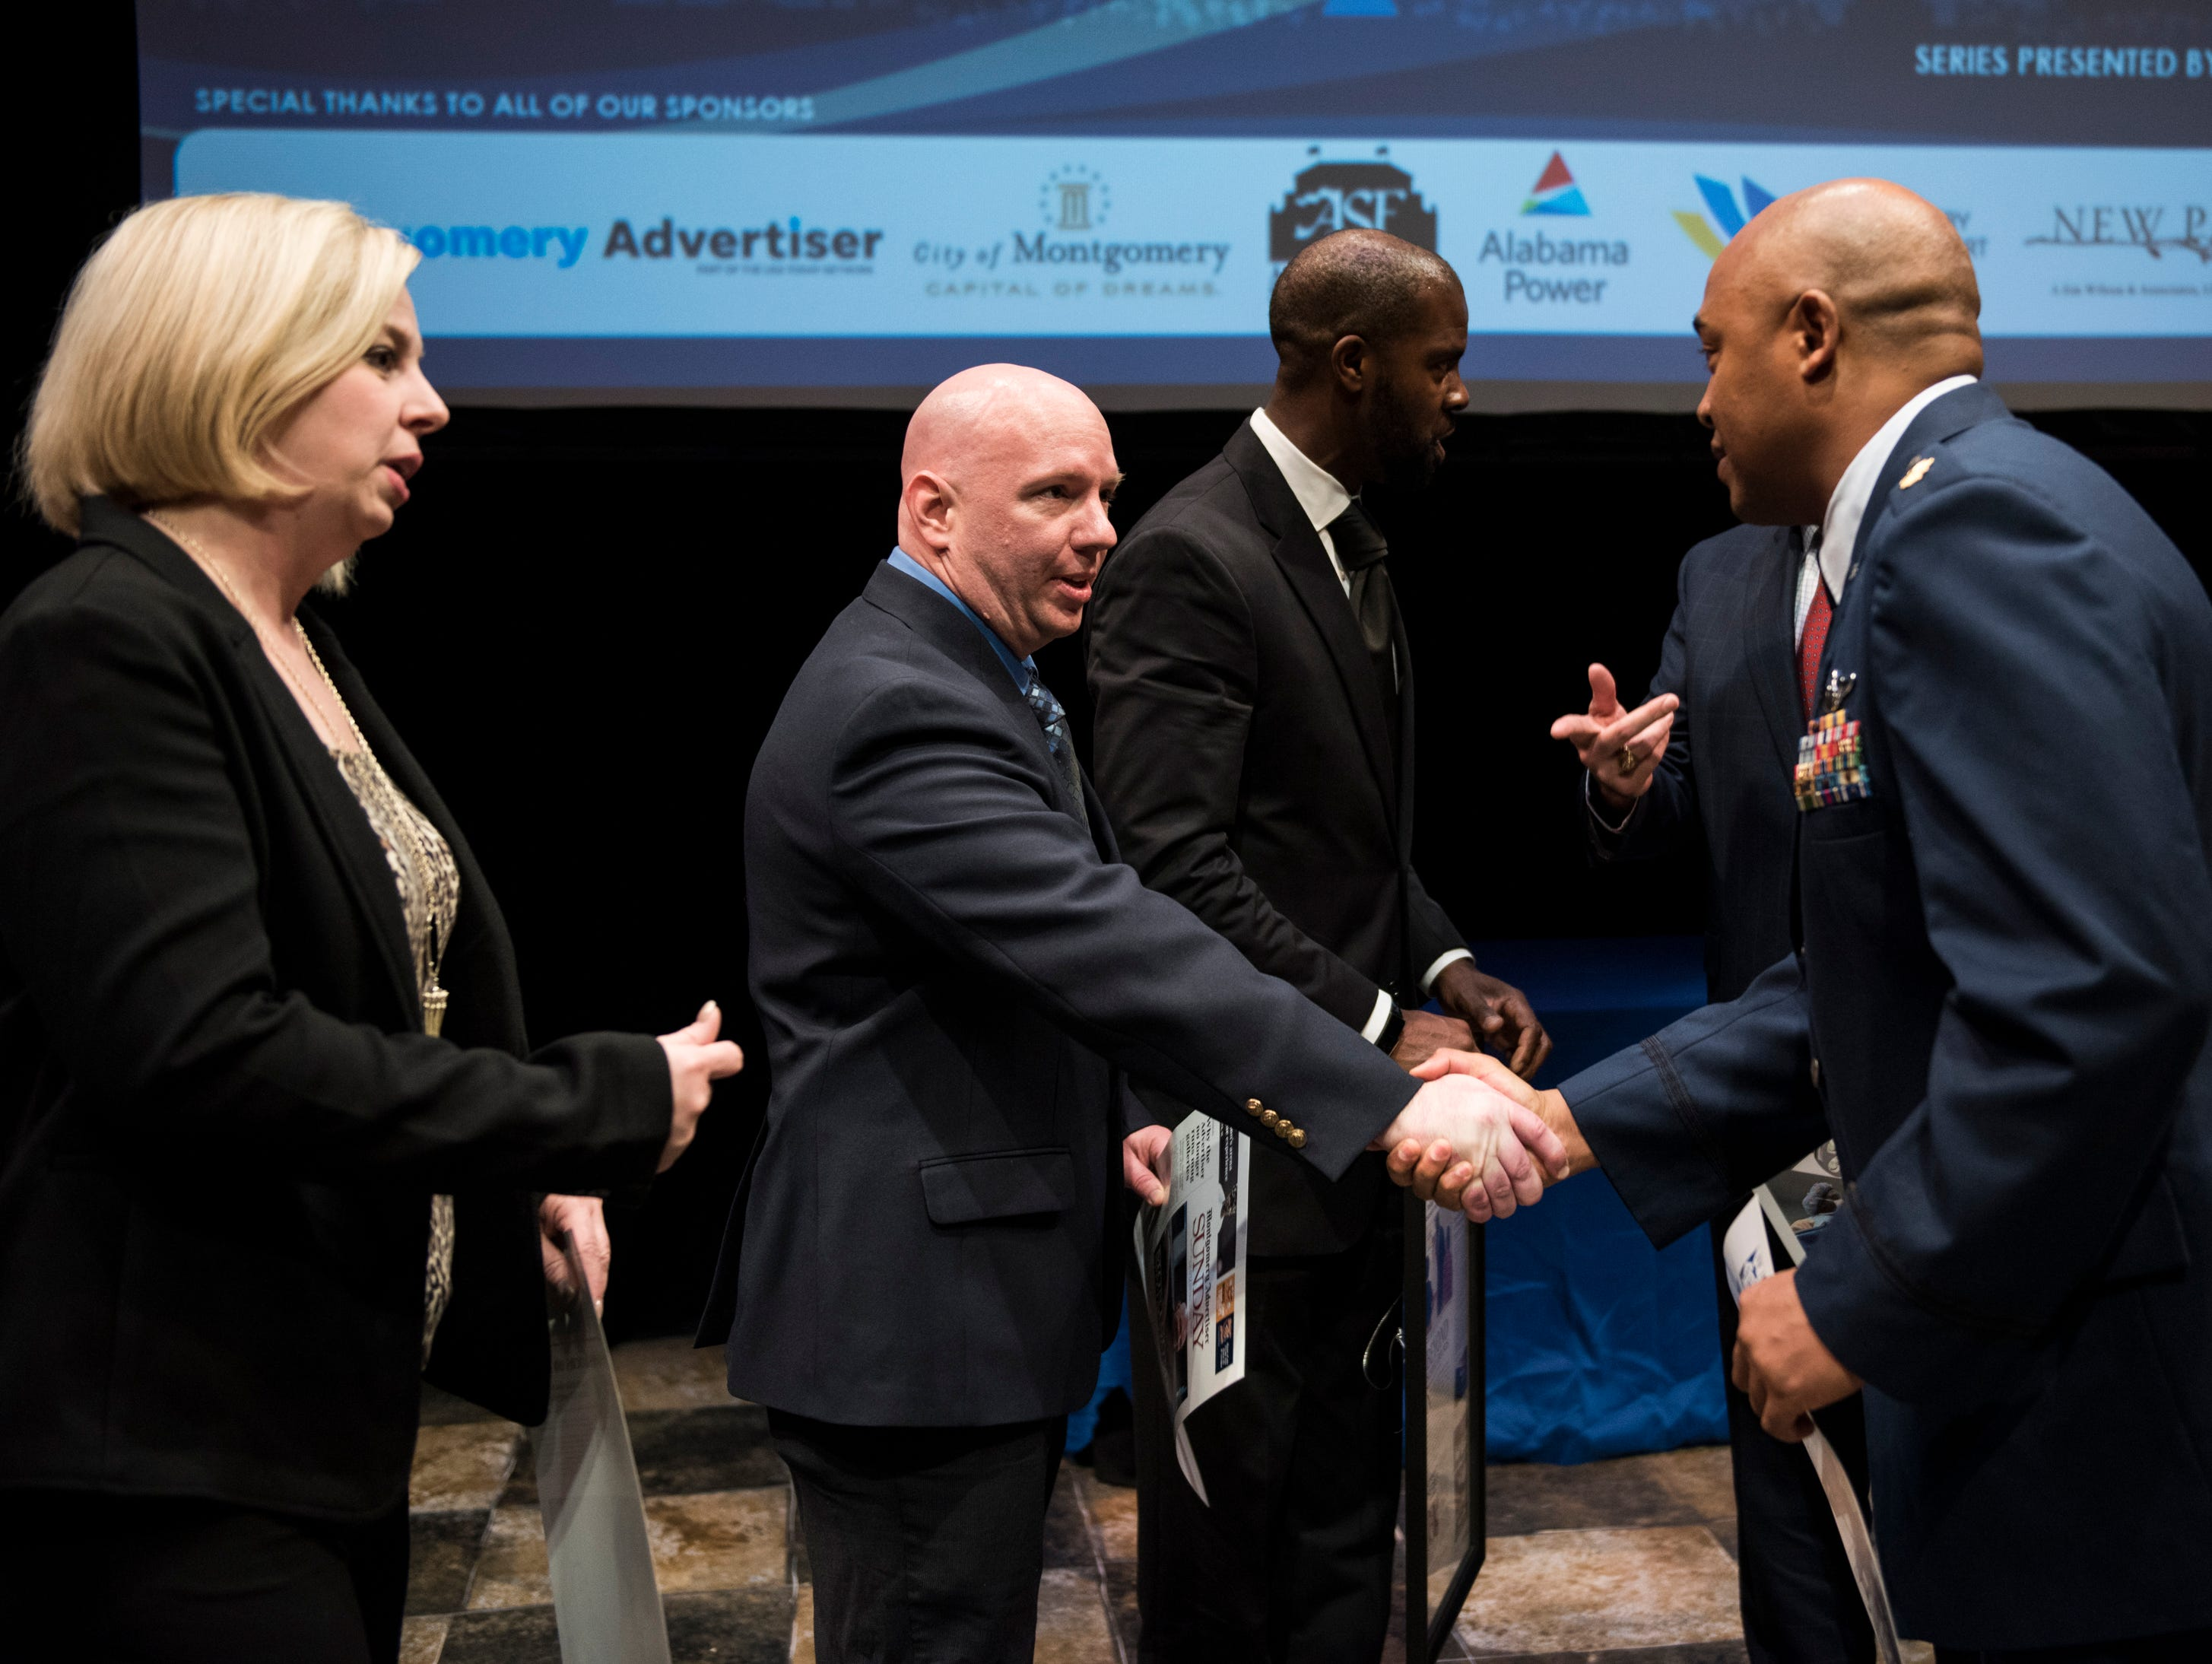 Community Heroes detective Bryan Goza and Maj.Rich Peace shake hands during the Community Heroes awards ceremony at Alabama Shakespeare Festival in Montgomery, Ala., on Tuesday, Jan. 8, 2019.